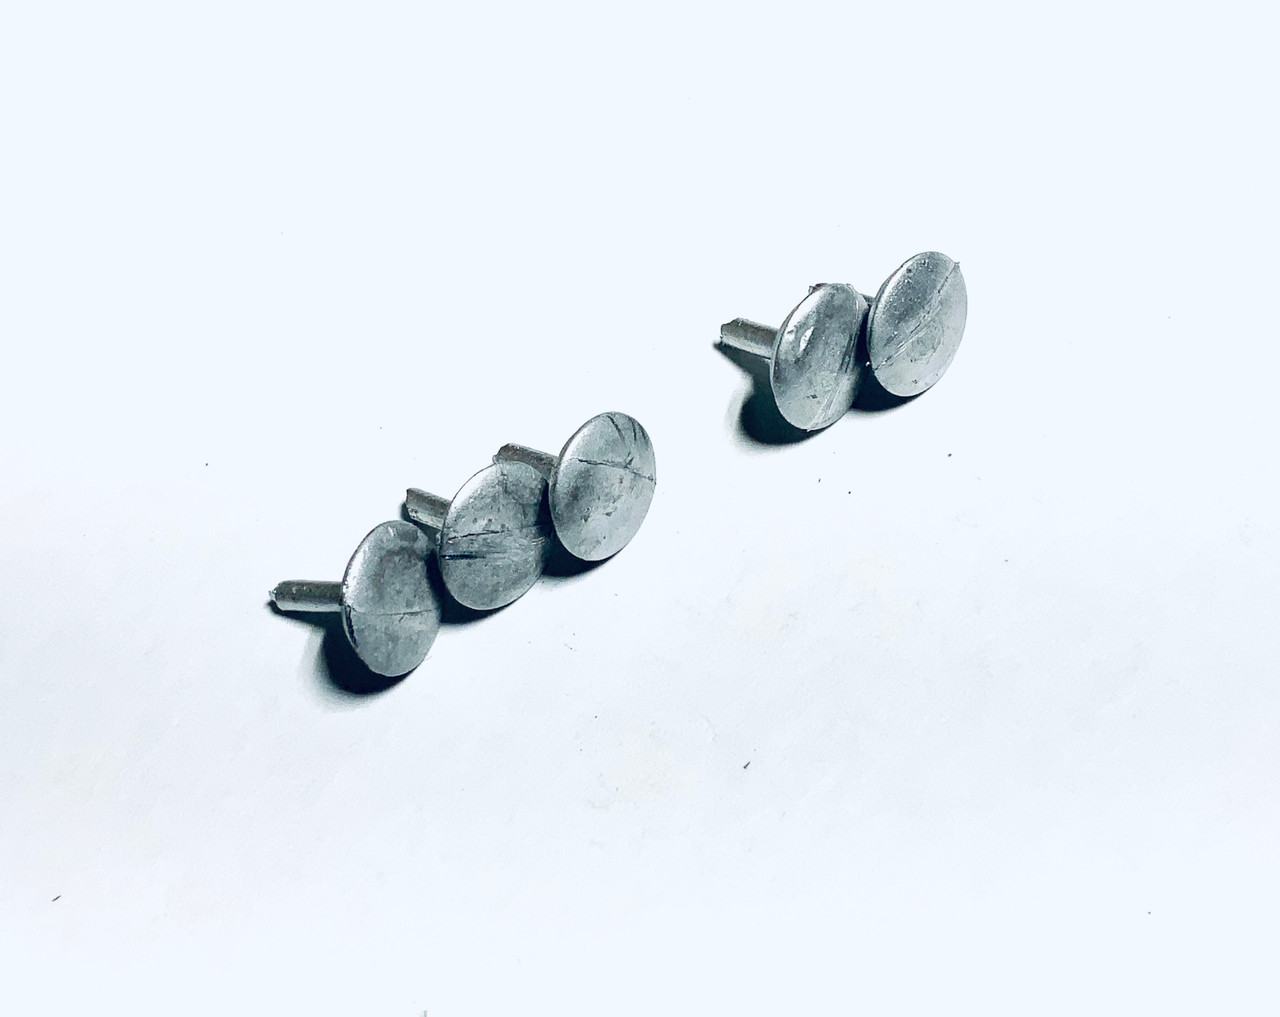 48-119 Budd Style Round Roof Vents Passenger Car FKA Keil Line O scale